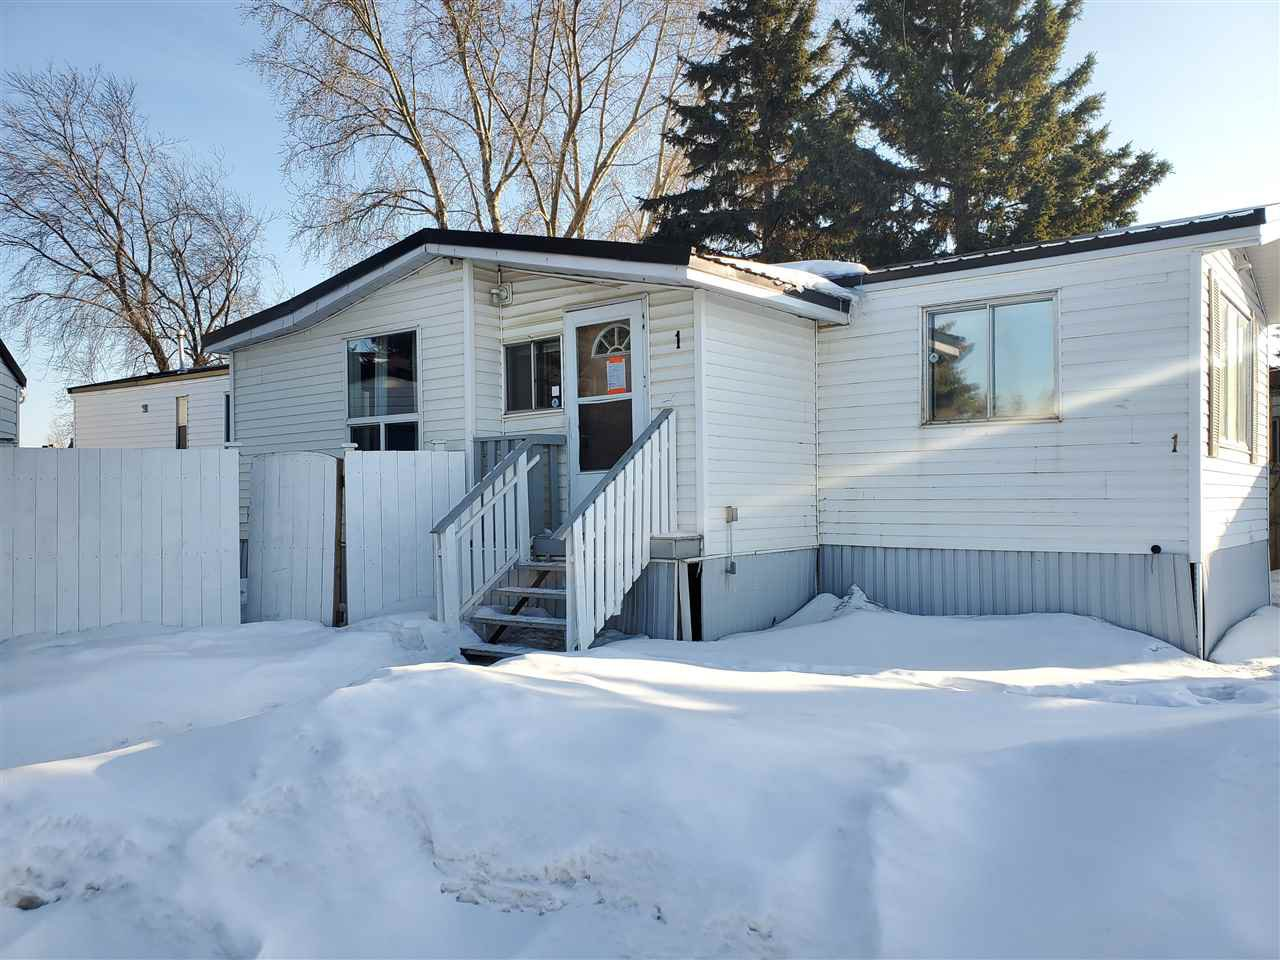 Main Photo: 1 West View Boulevard in Edmonton: Zone 59 Mobile for sale : MLS®# E4193738